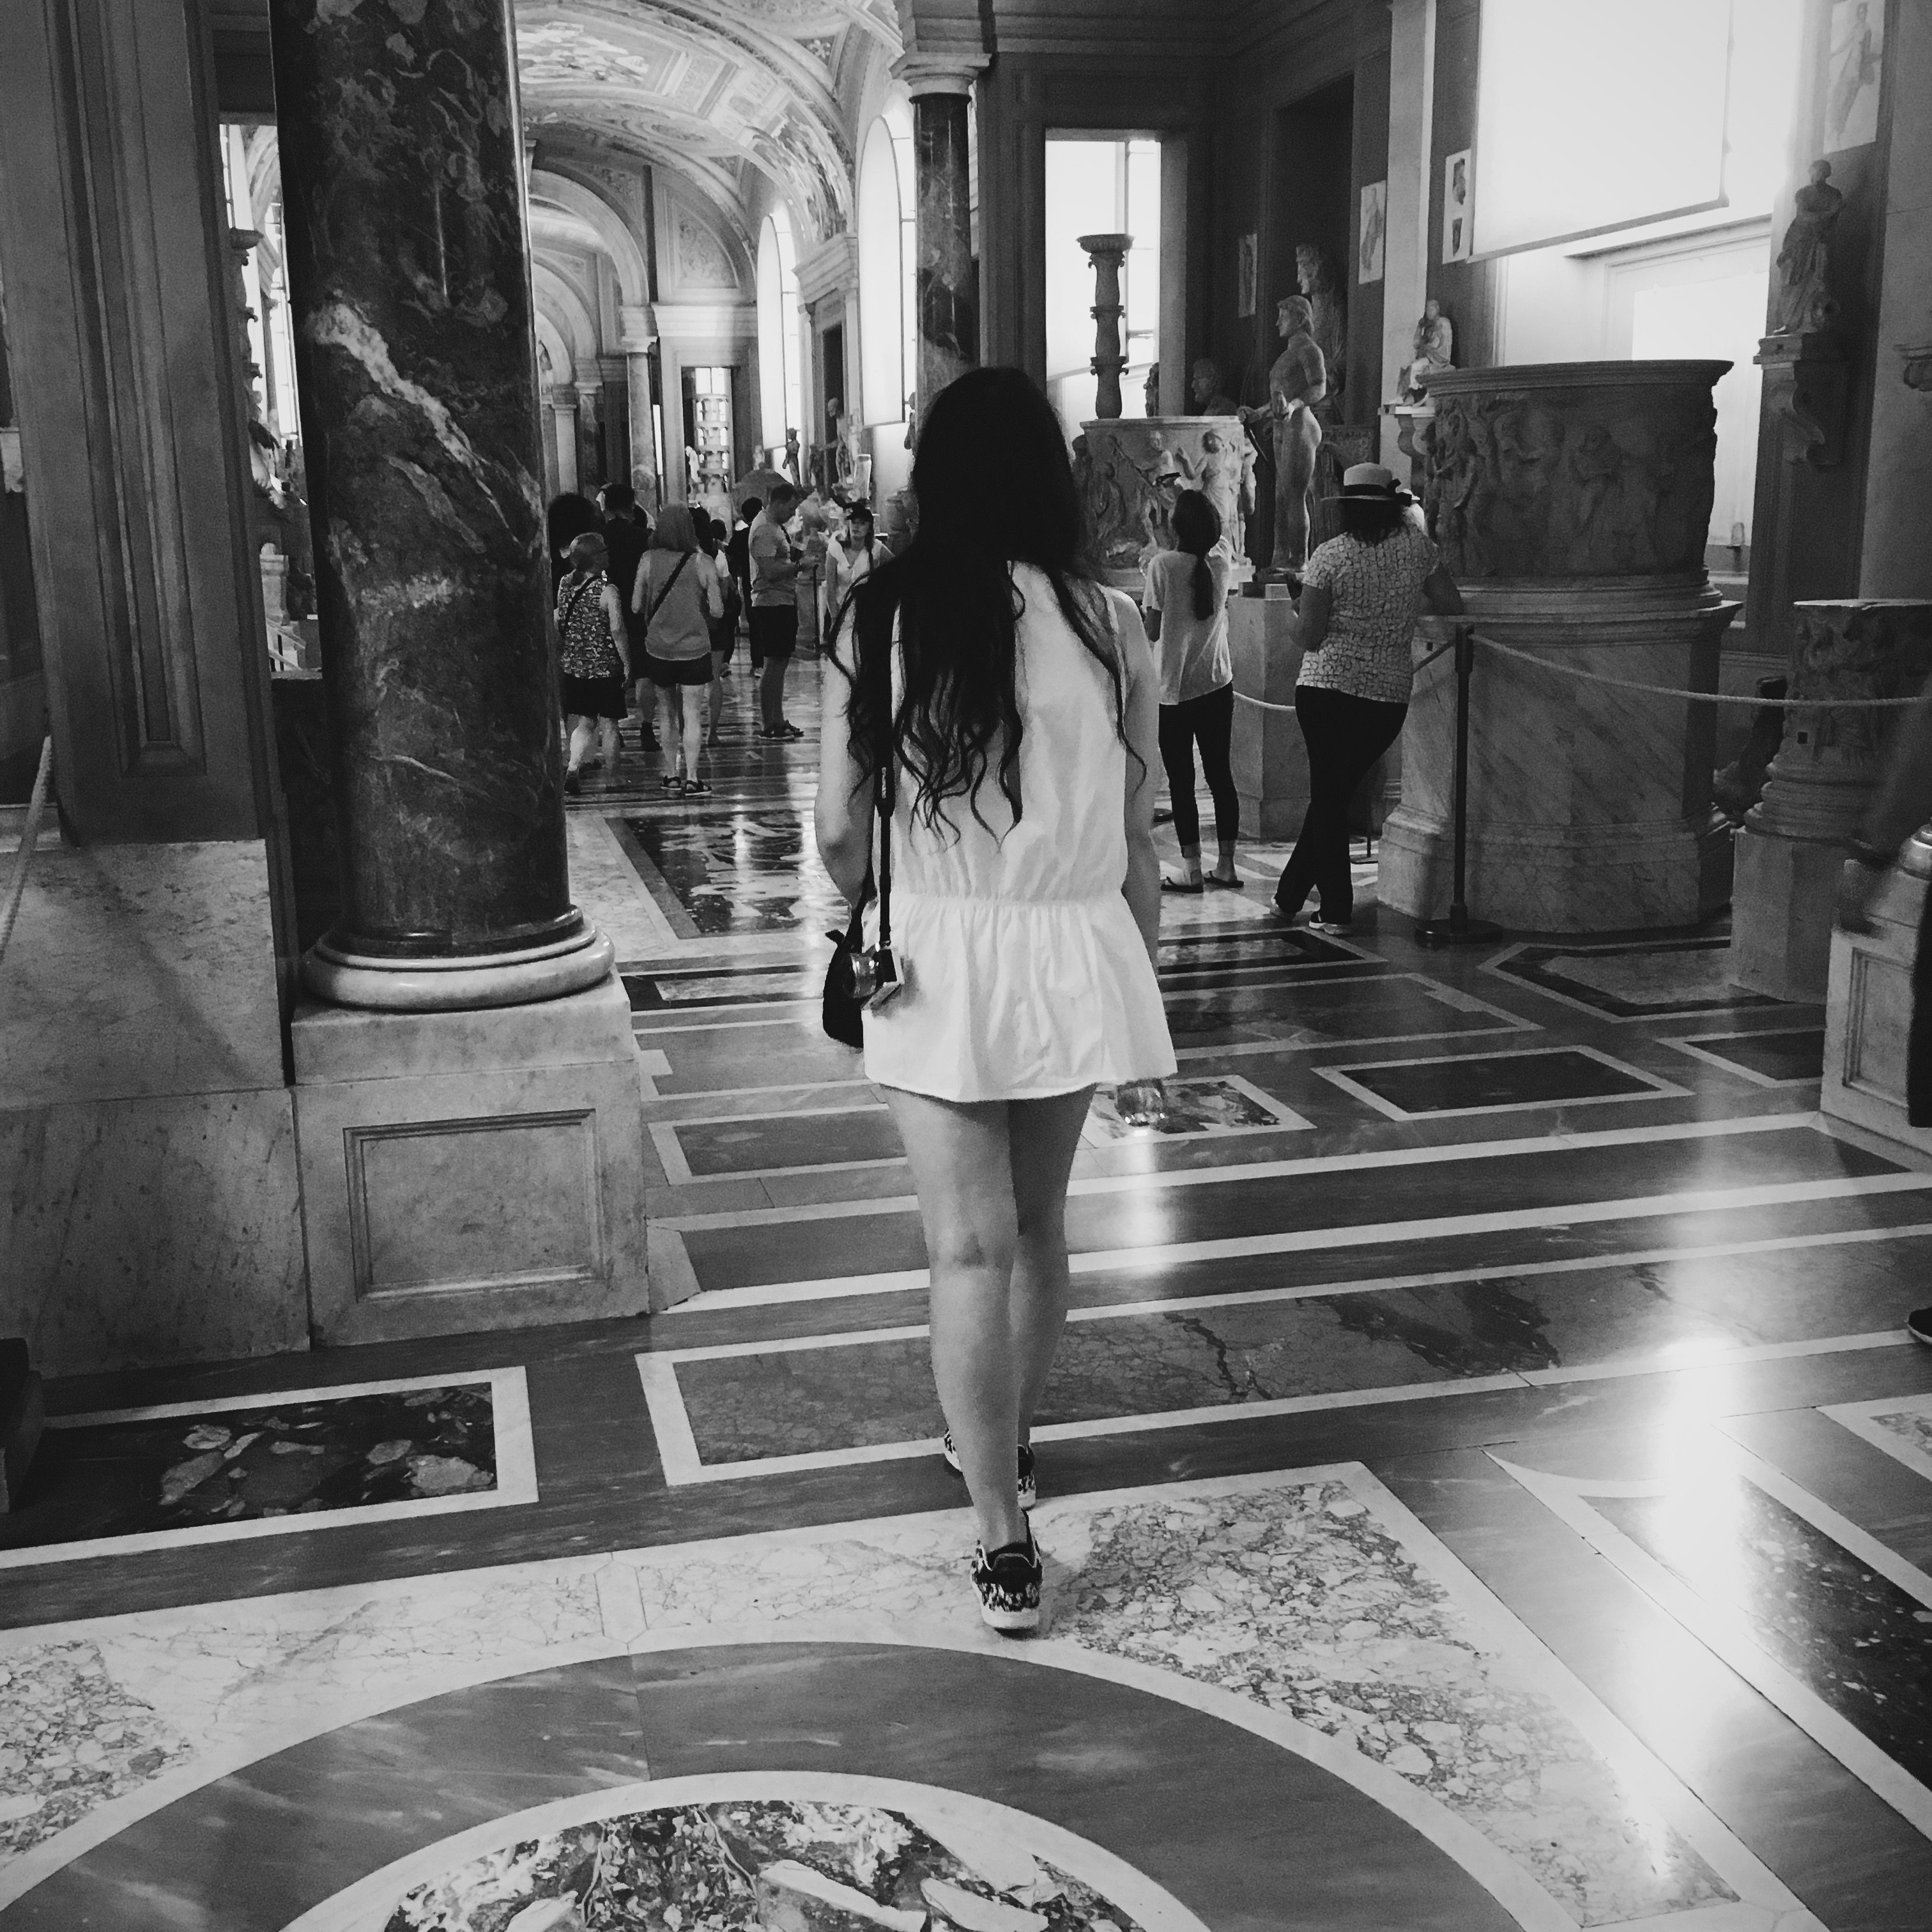 VATICAN CITY & SUMMER PLAYSUIT || THECHICITALIAN || Second Rome outfit with my Summer playsuit from Zara to do some sightseeing around Vatican city